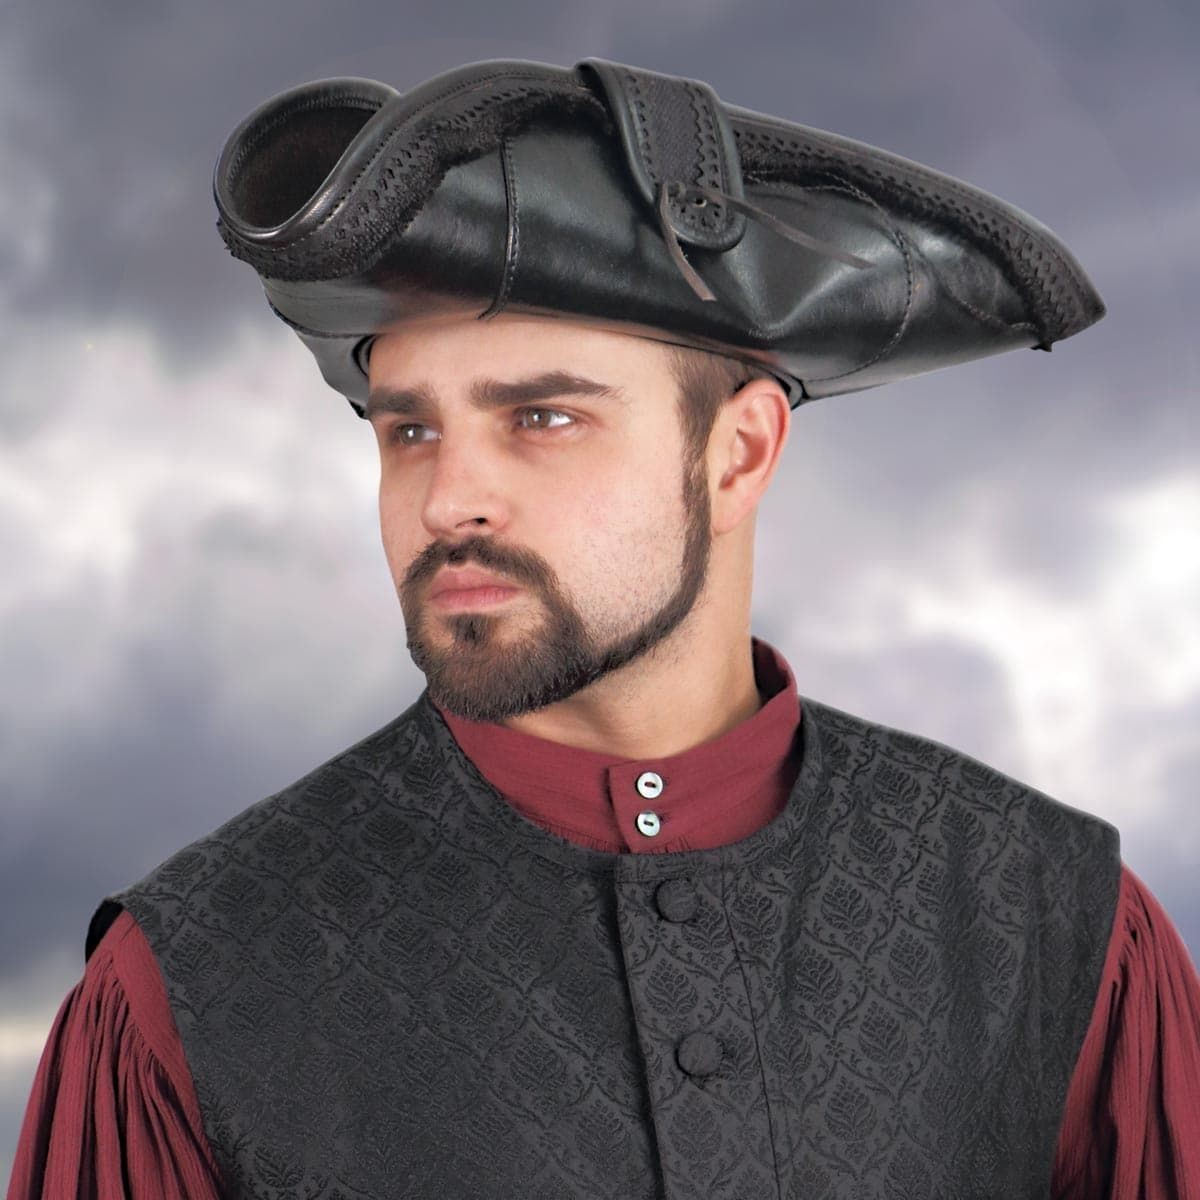 Black Leather Pirate King Tricorn Hat